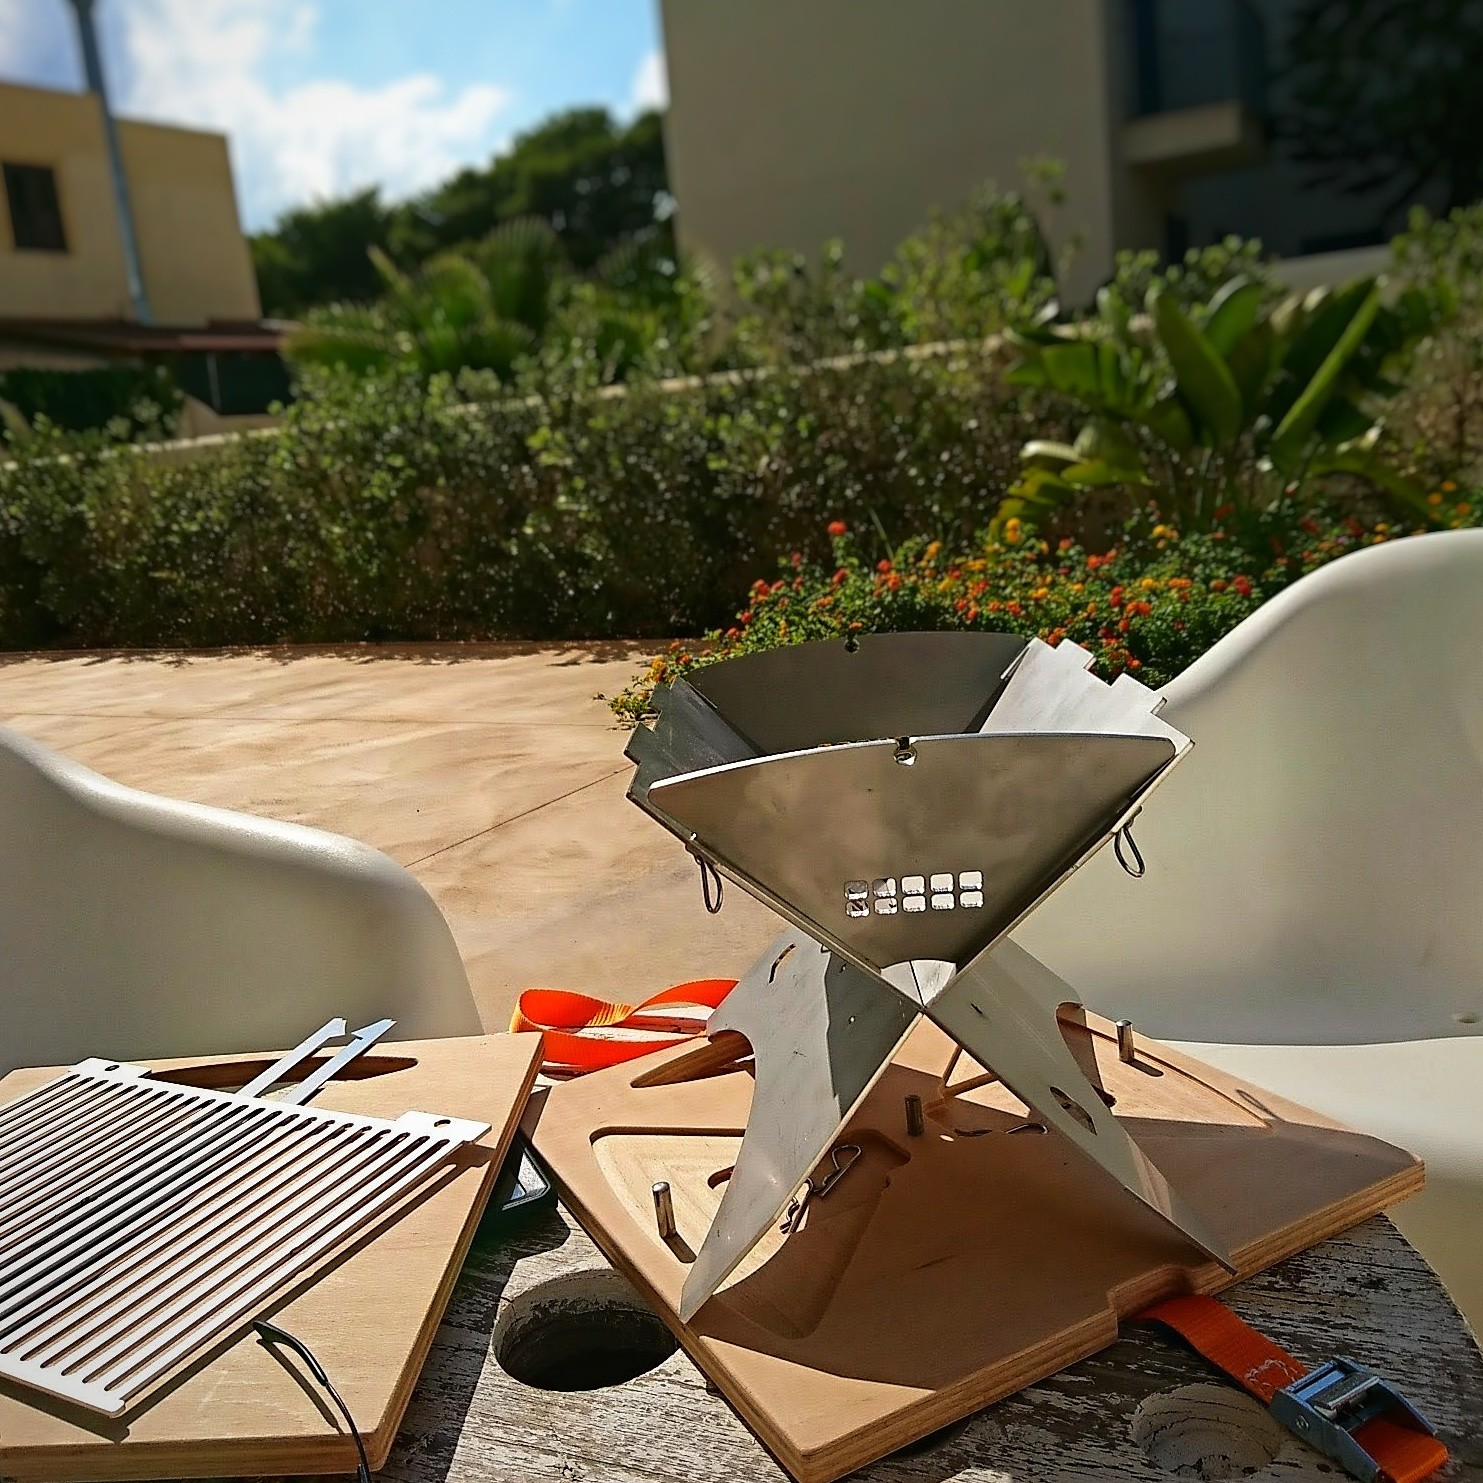 ZWEEnHALB Stainless Steel Grill